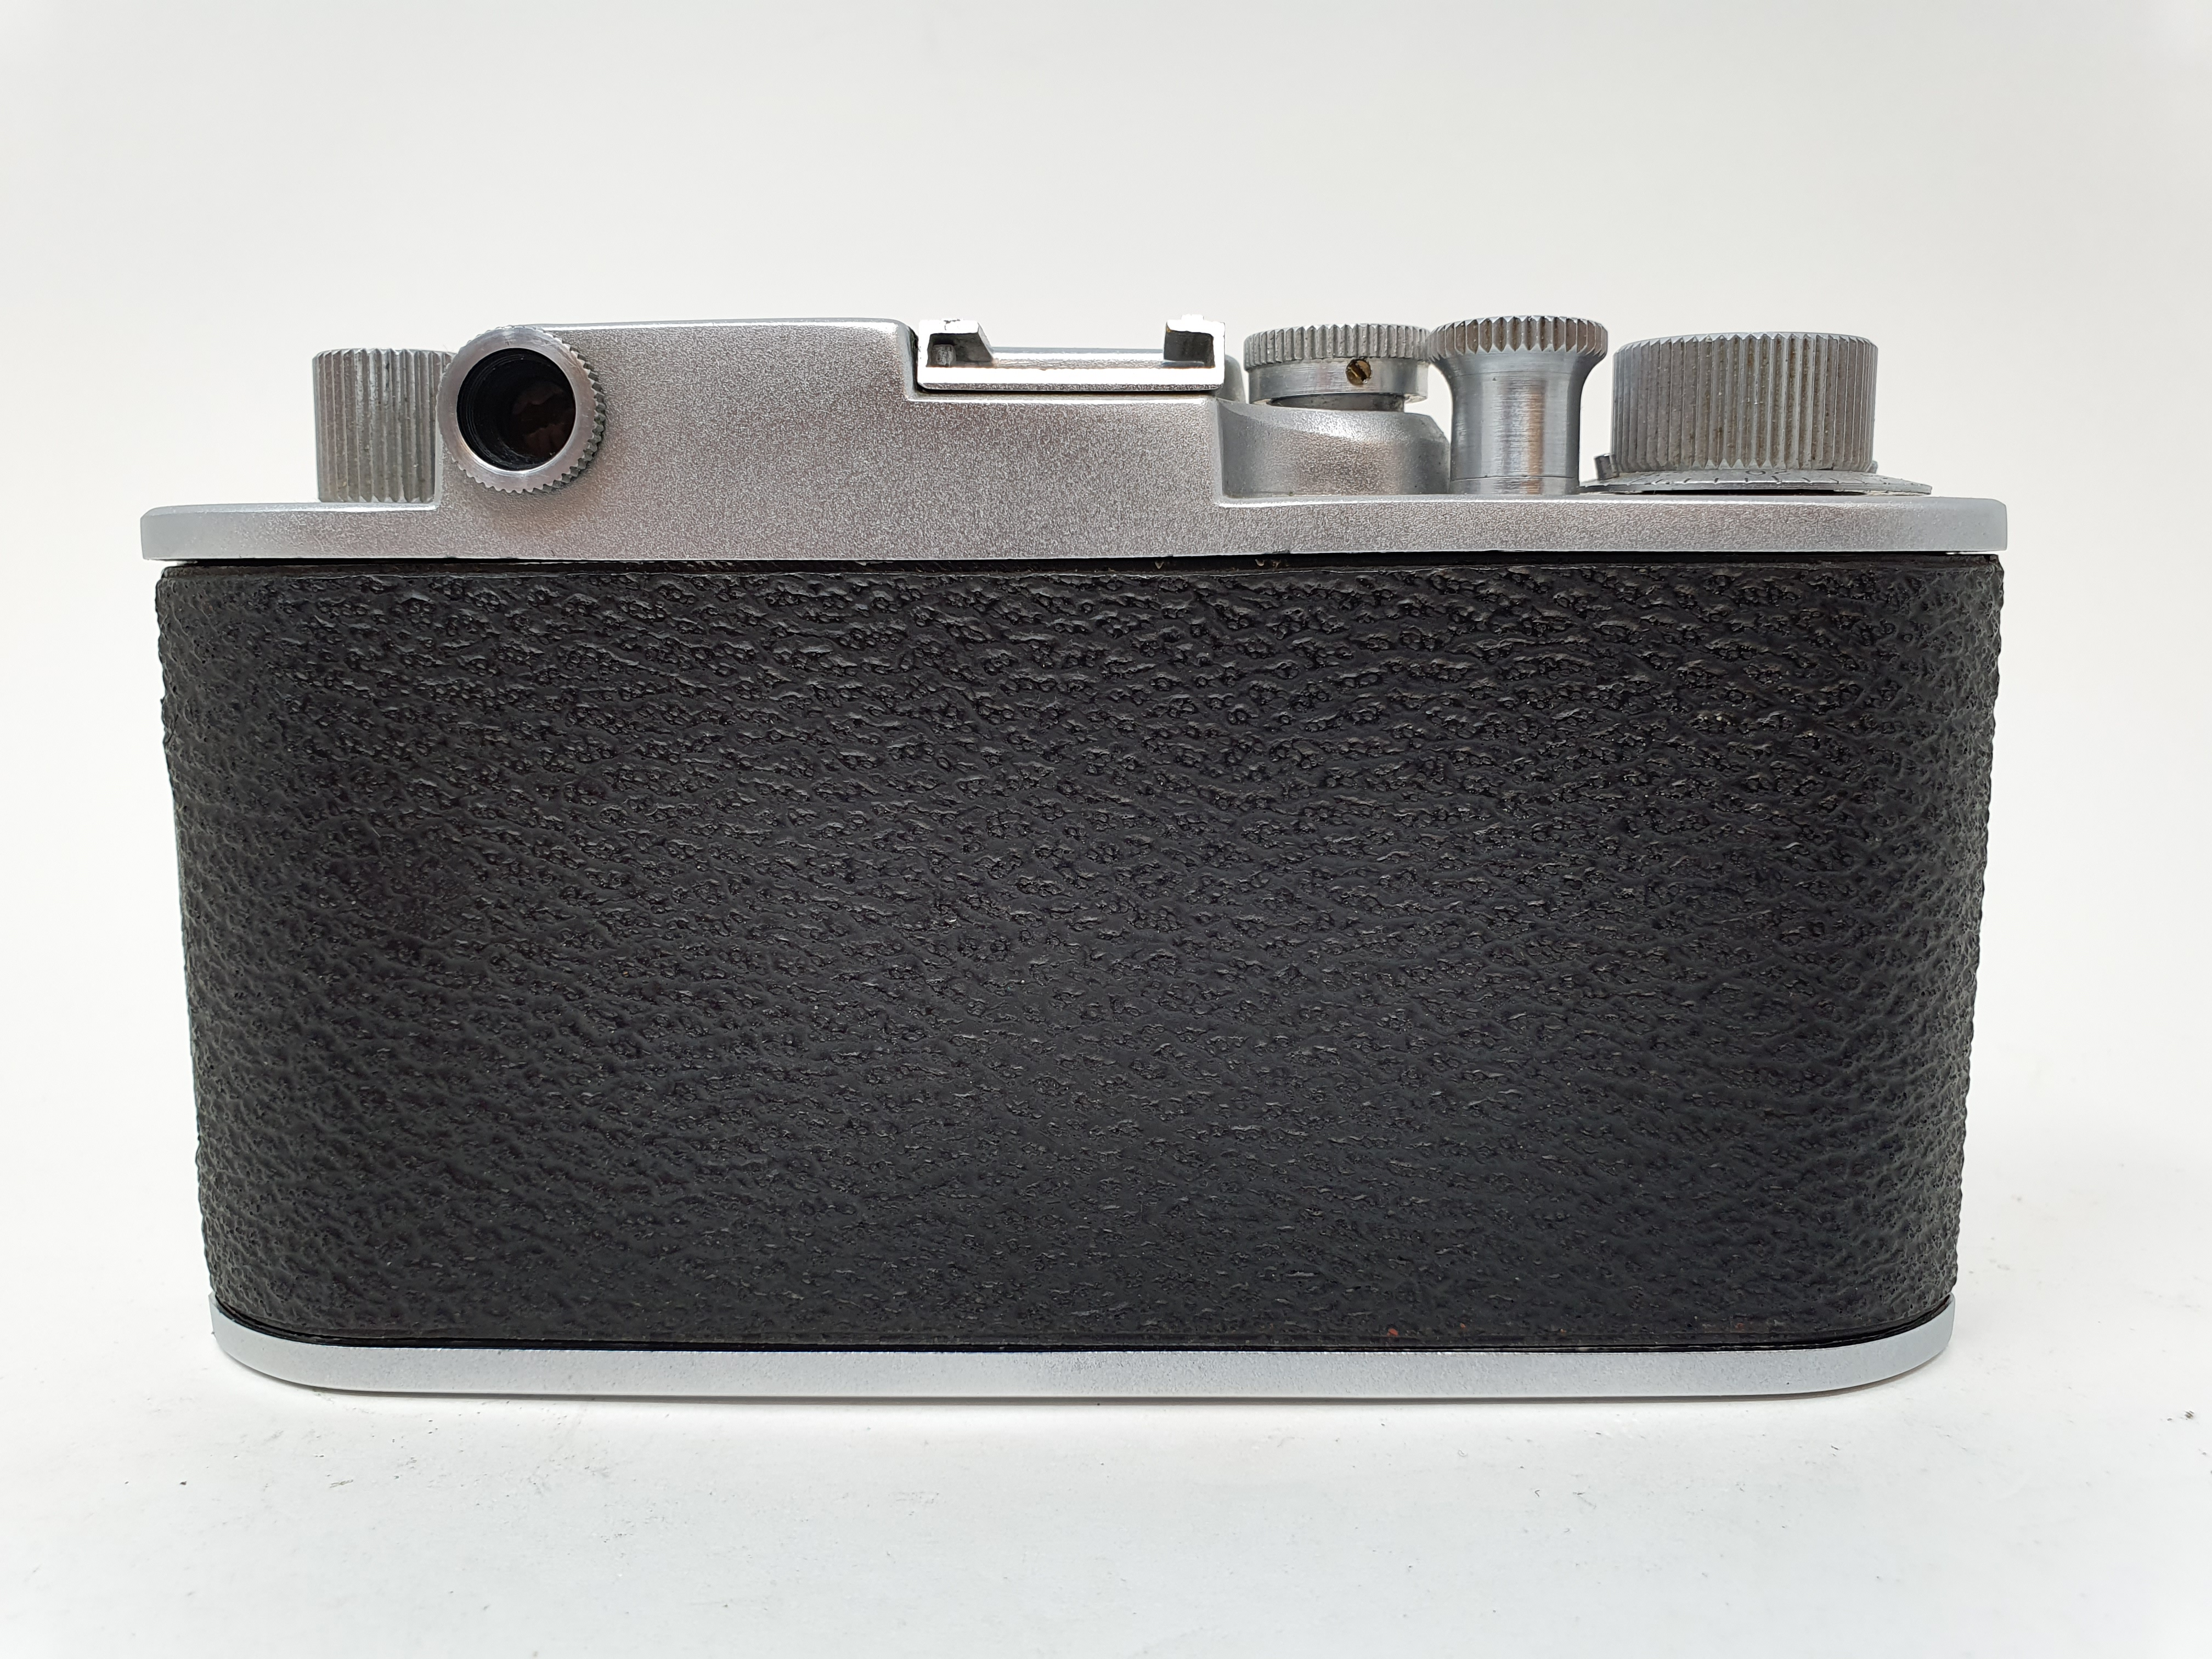 A Minolta-35, serial number 11285 Provenance: Part of a vast single owner collection of cameras, - Image 3 of 3